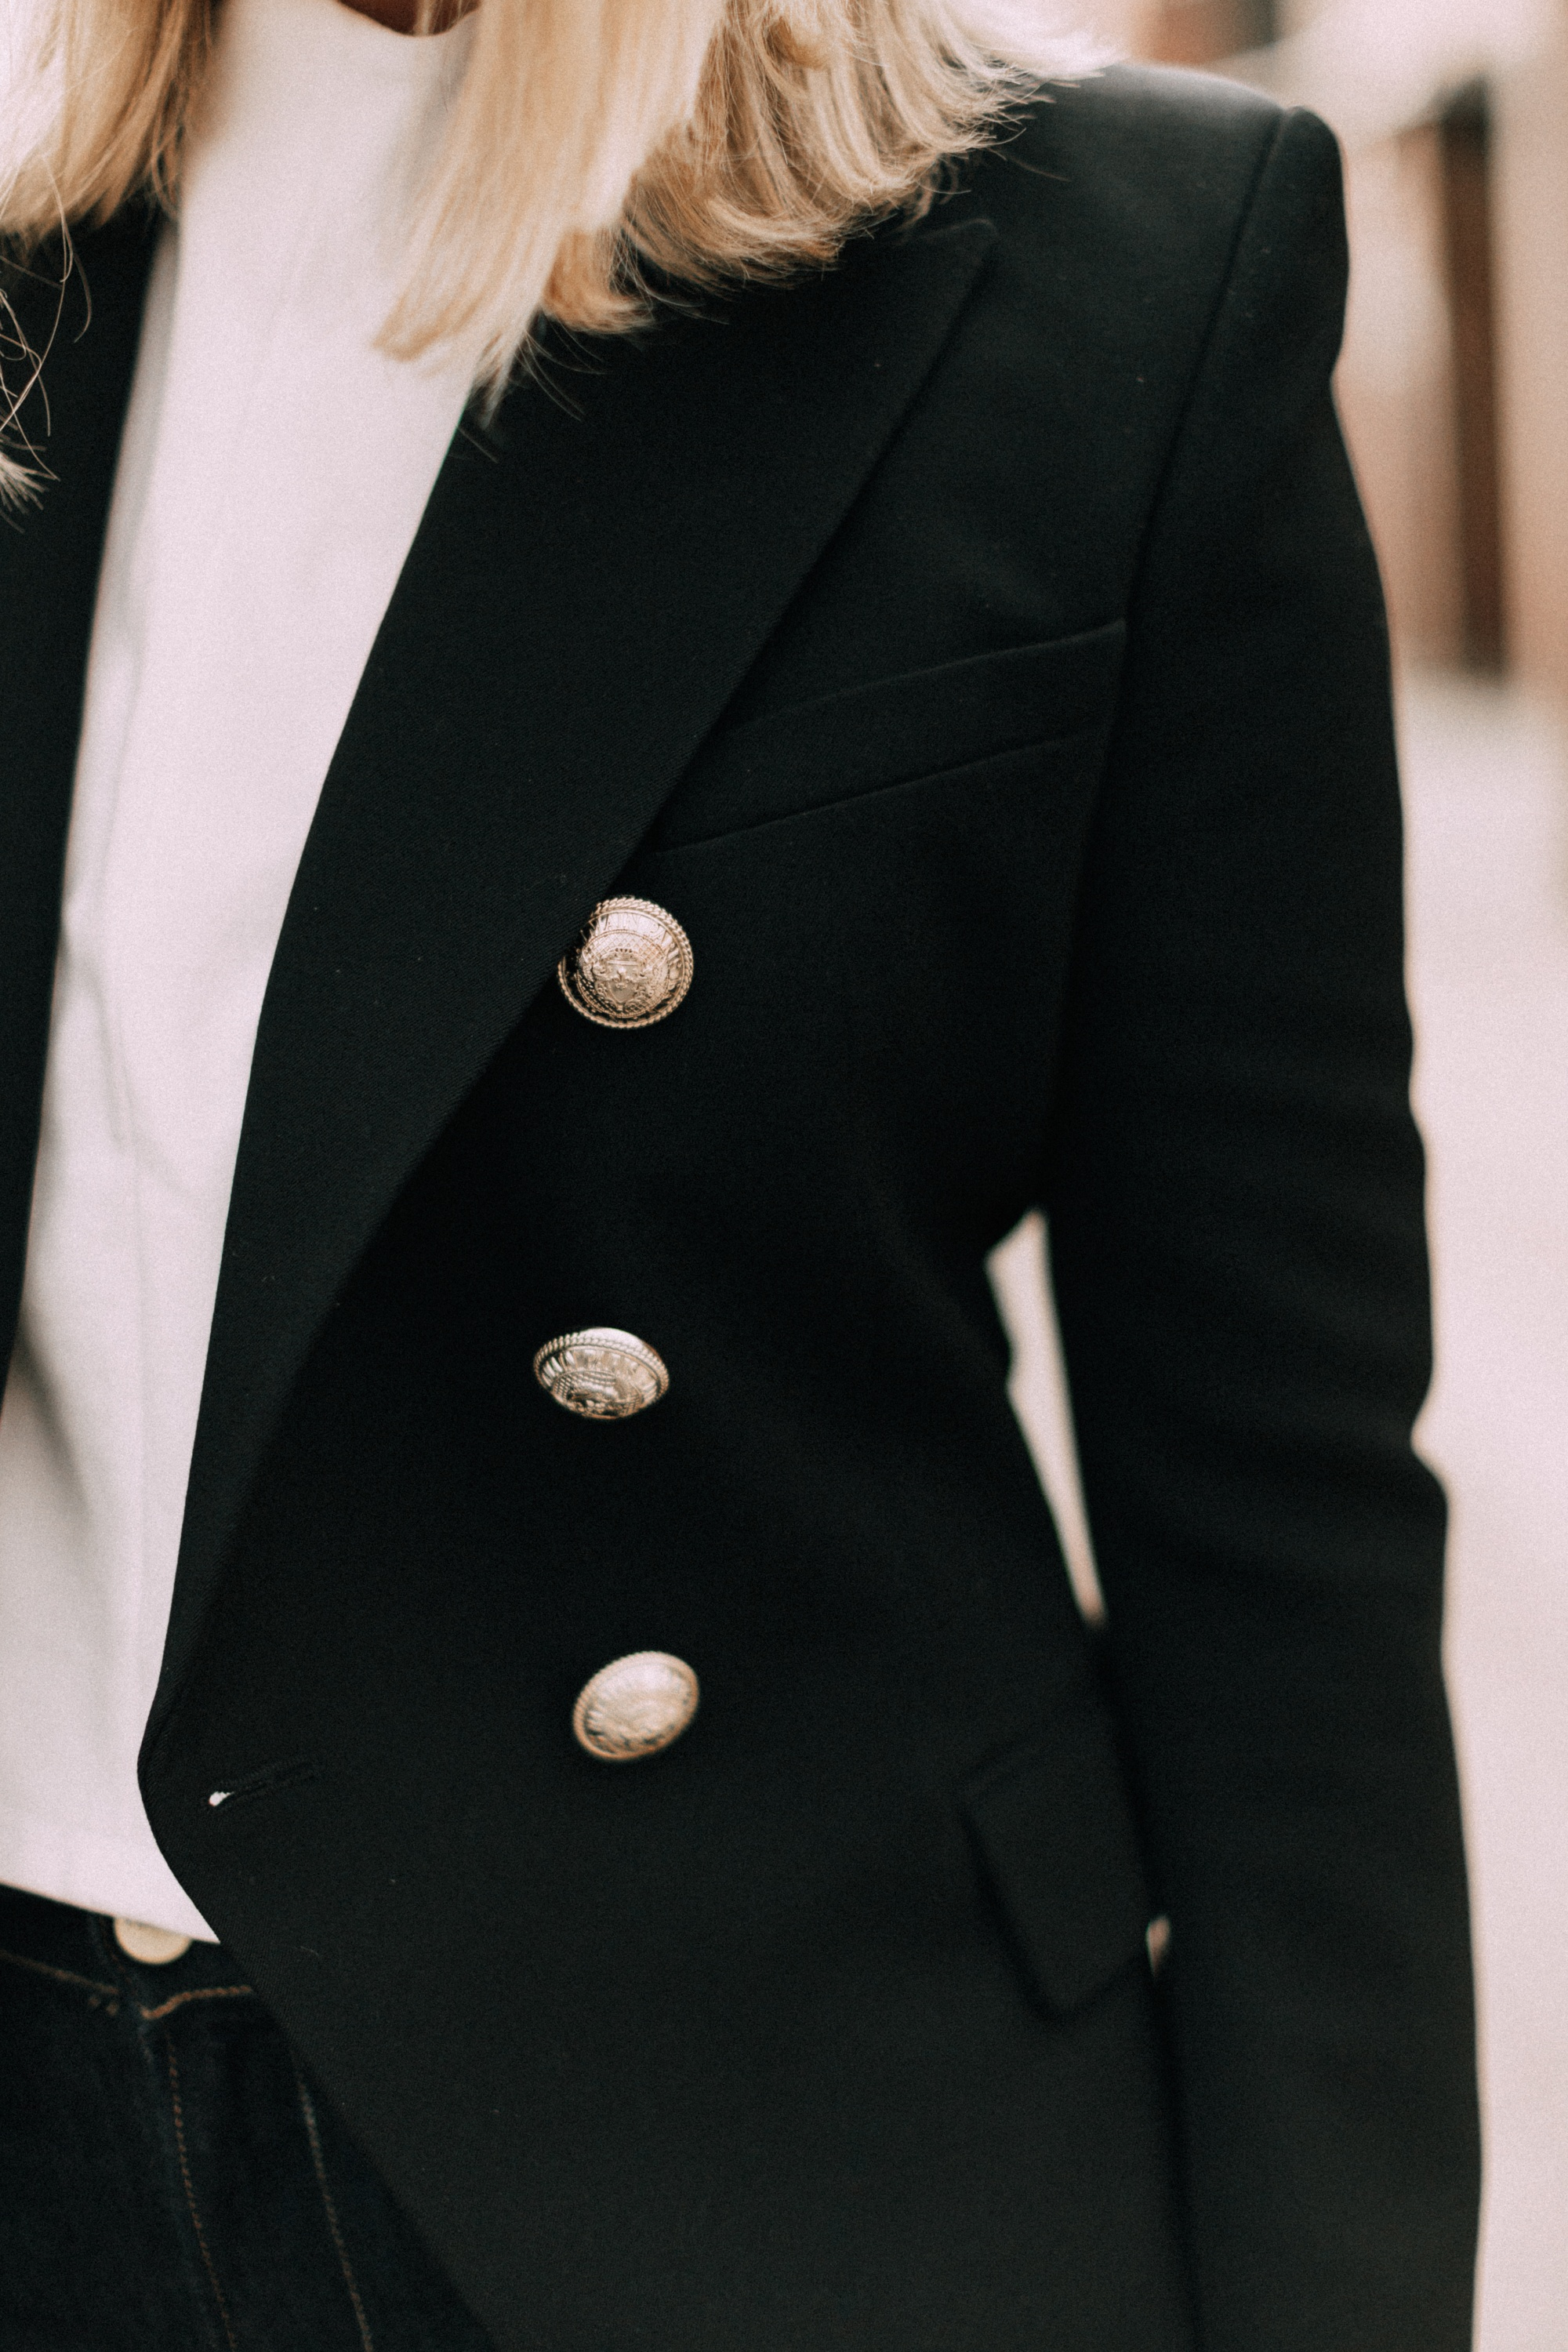 black Balmain blazer with gold buttons outfit worn with white top